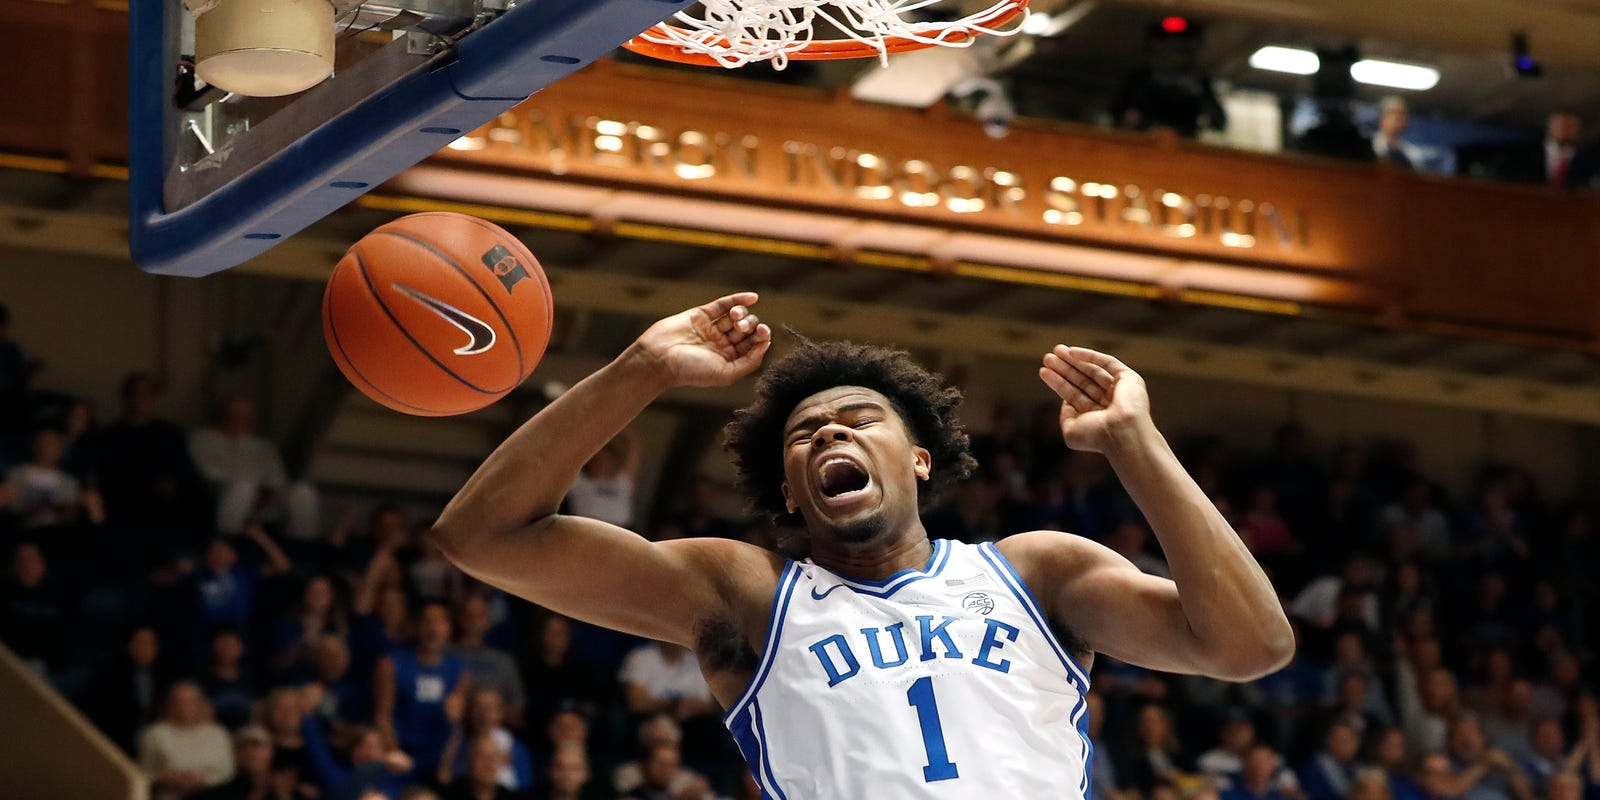 Duke's gameplan with Vernon Carey and more as Louisville basketball plays the Blue Devils